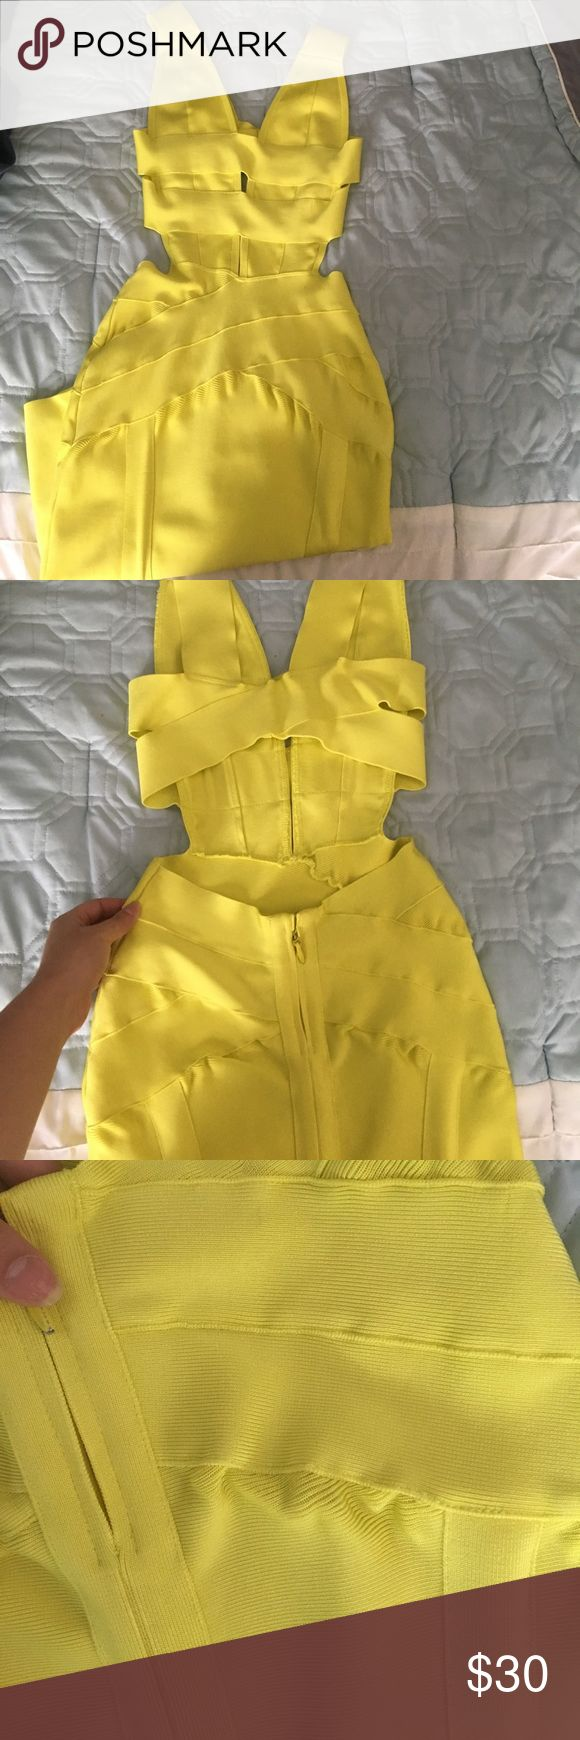 House of CB Neon Yellow Dress🔥 Super sexy dress, with a low open back ! Bandage dress material. Took it to the dry cleaning and it came back with some stretches to it (shown in pics) but other than that it is in good condition! house of Cb Dresses Midi